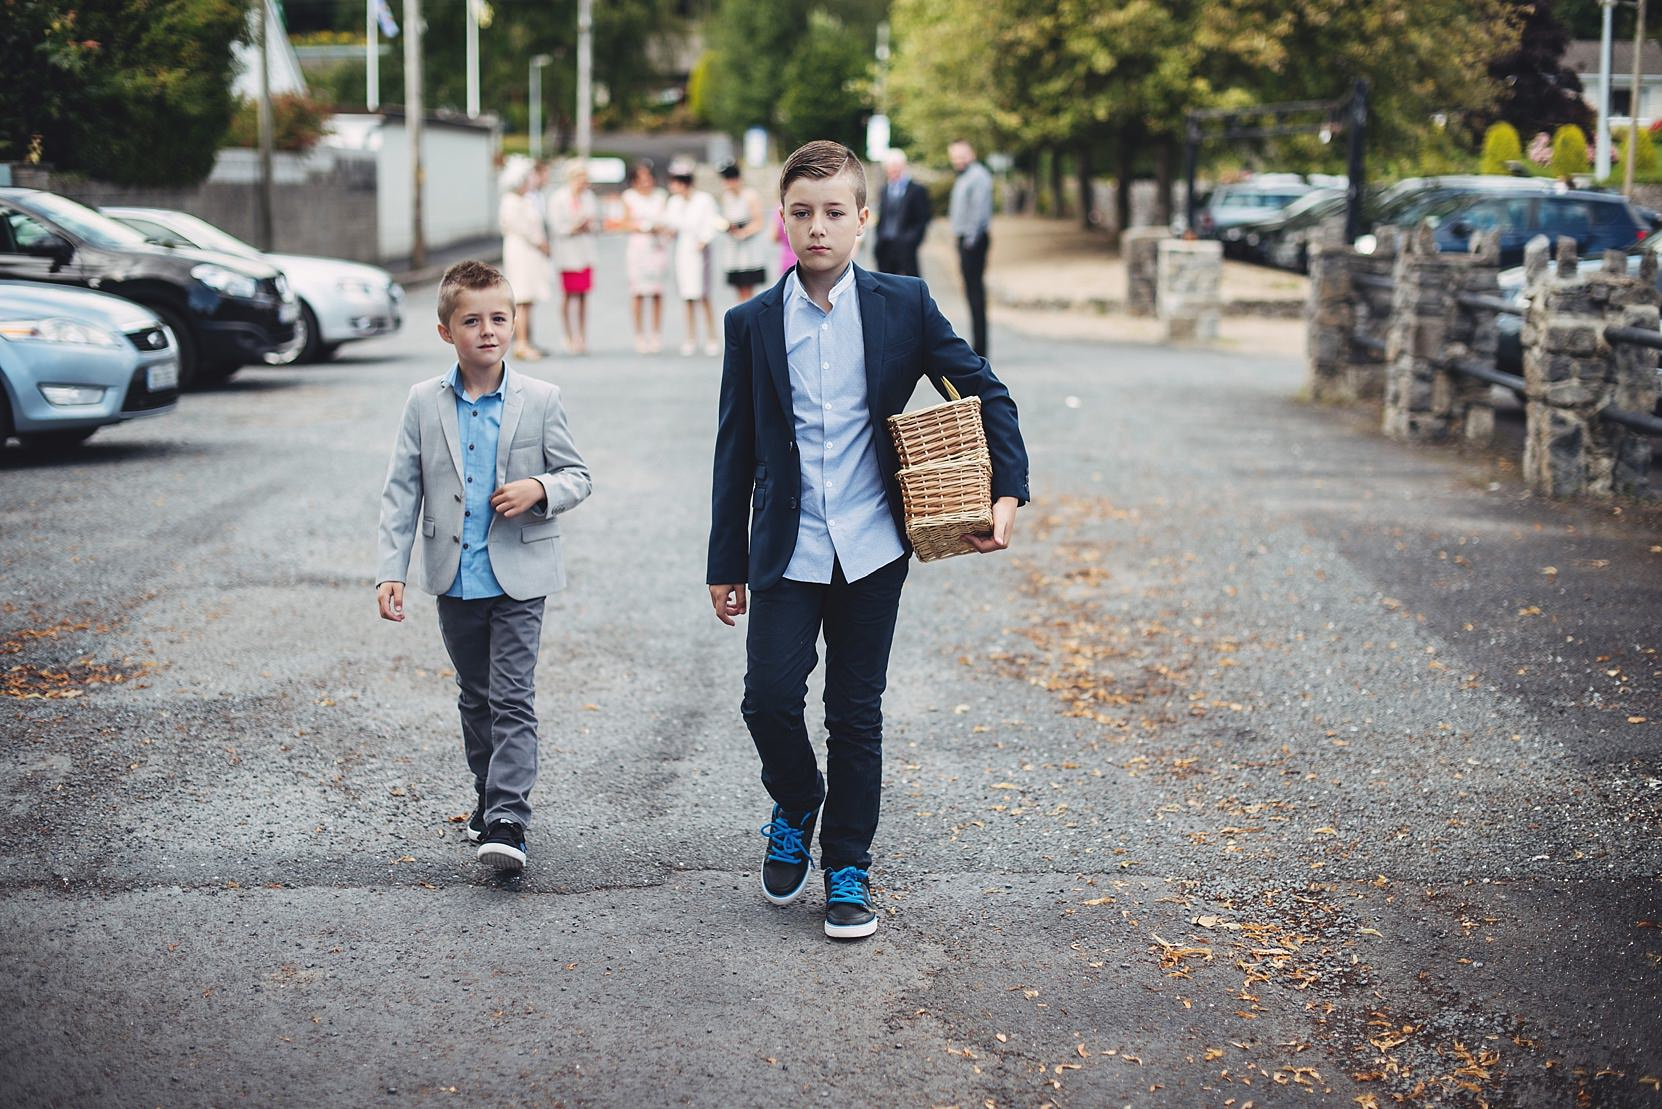 Pageboys at a wedding with the wedding booklets